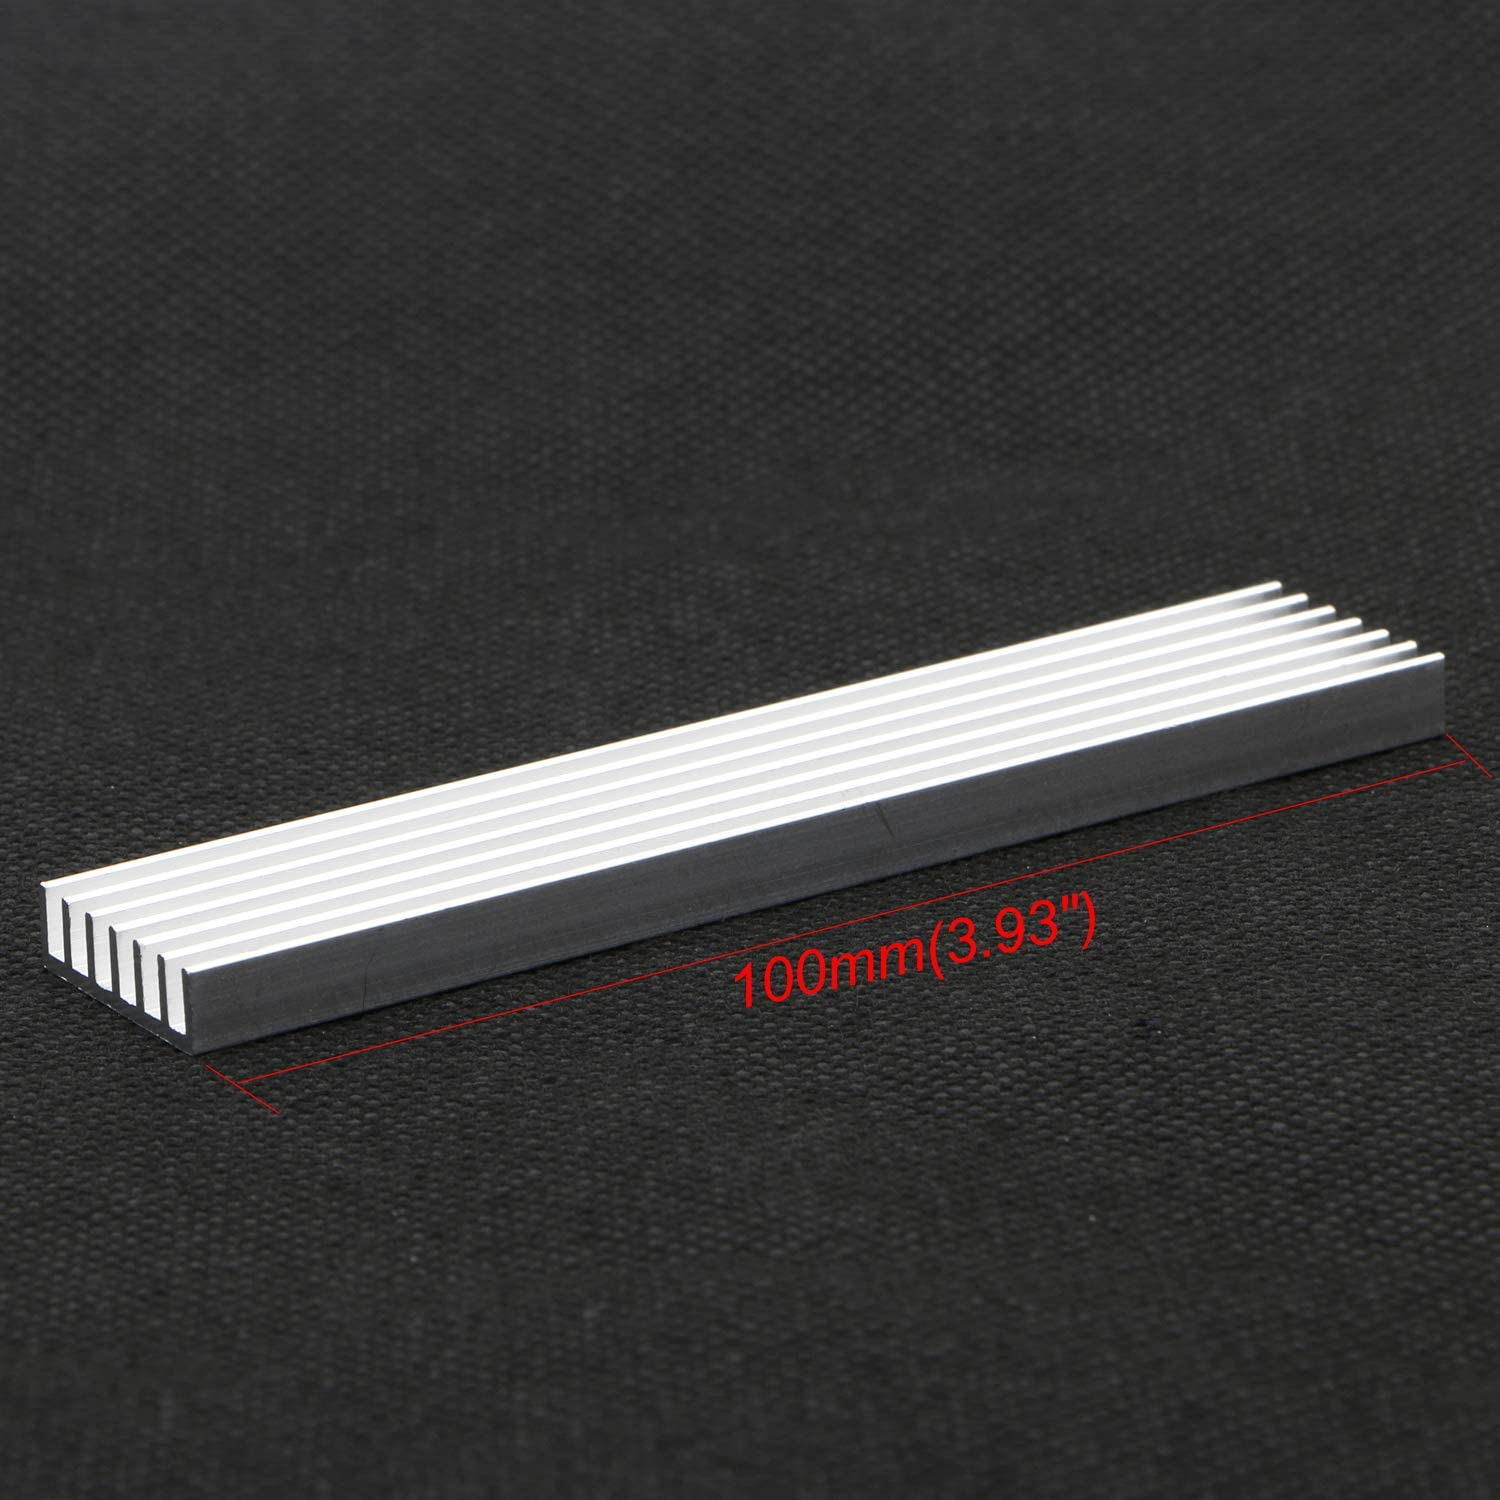 Xiangxin Cooler 16 Fins Heatsink Good Thermal Conductivity Stable Practical Durable for Power Electric Device Power Ic Led Light Devices 10010018Mm